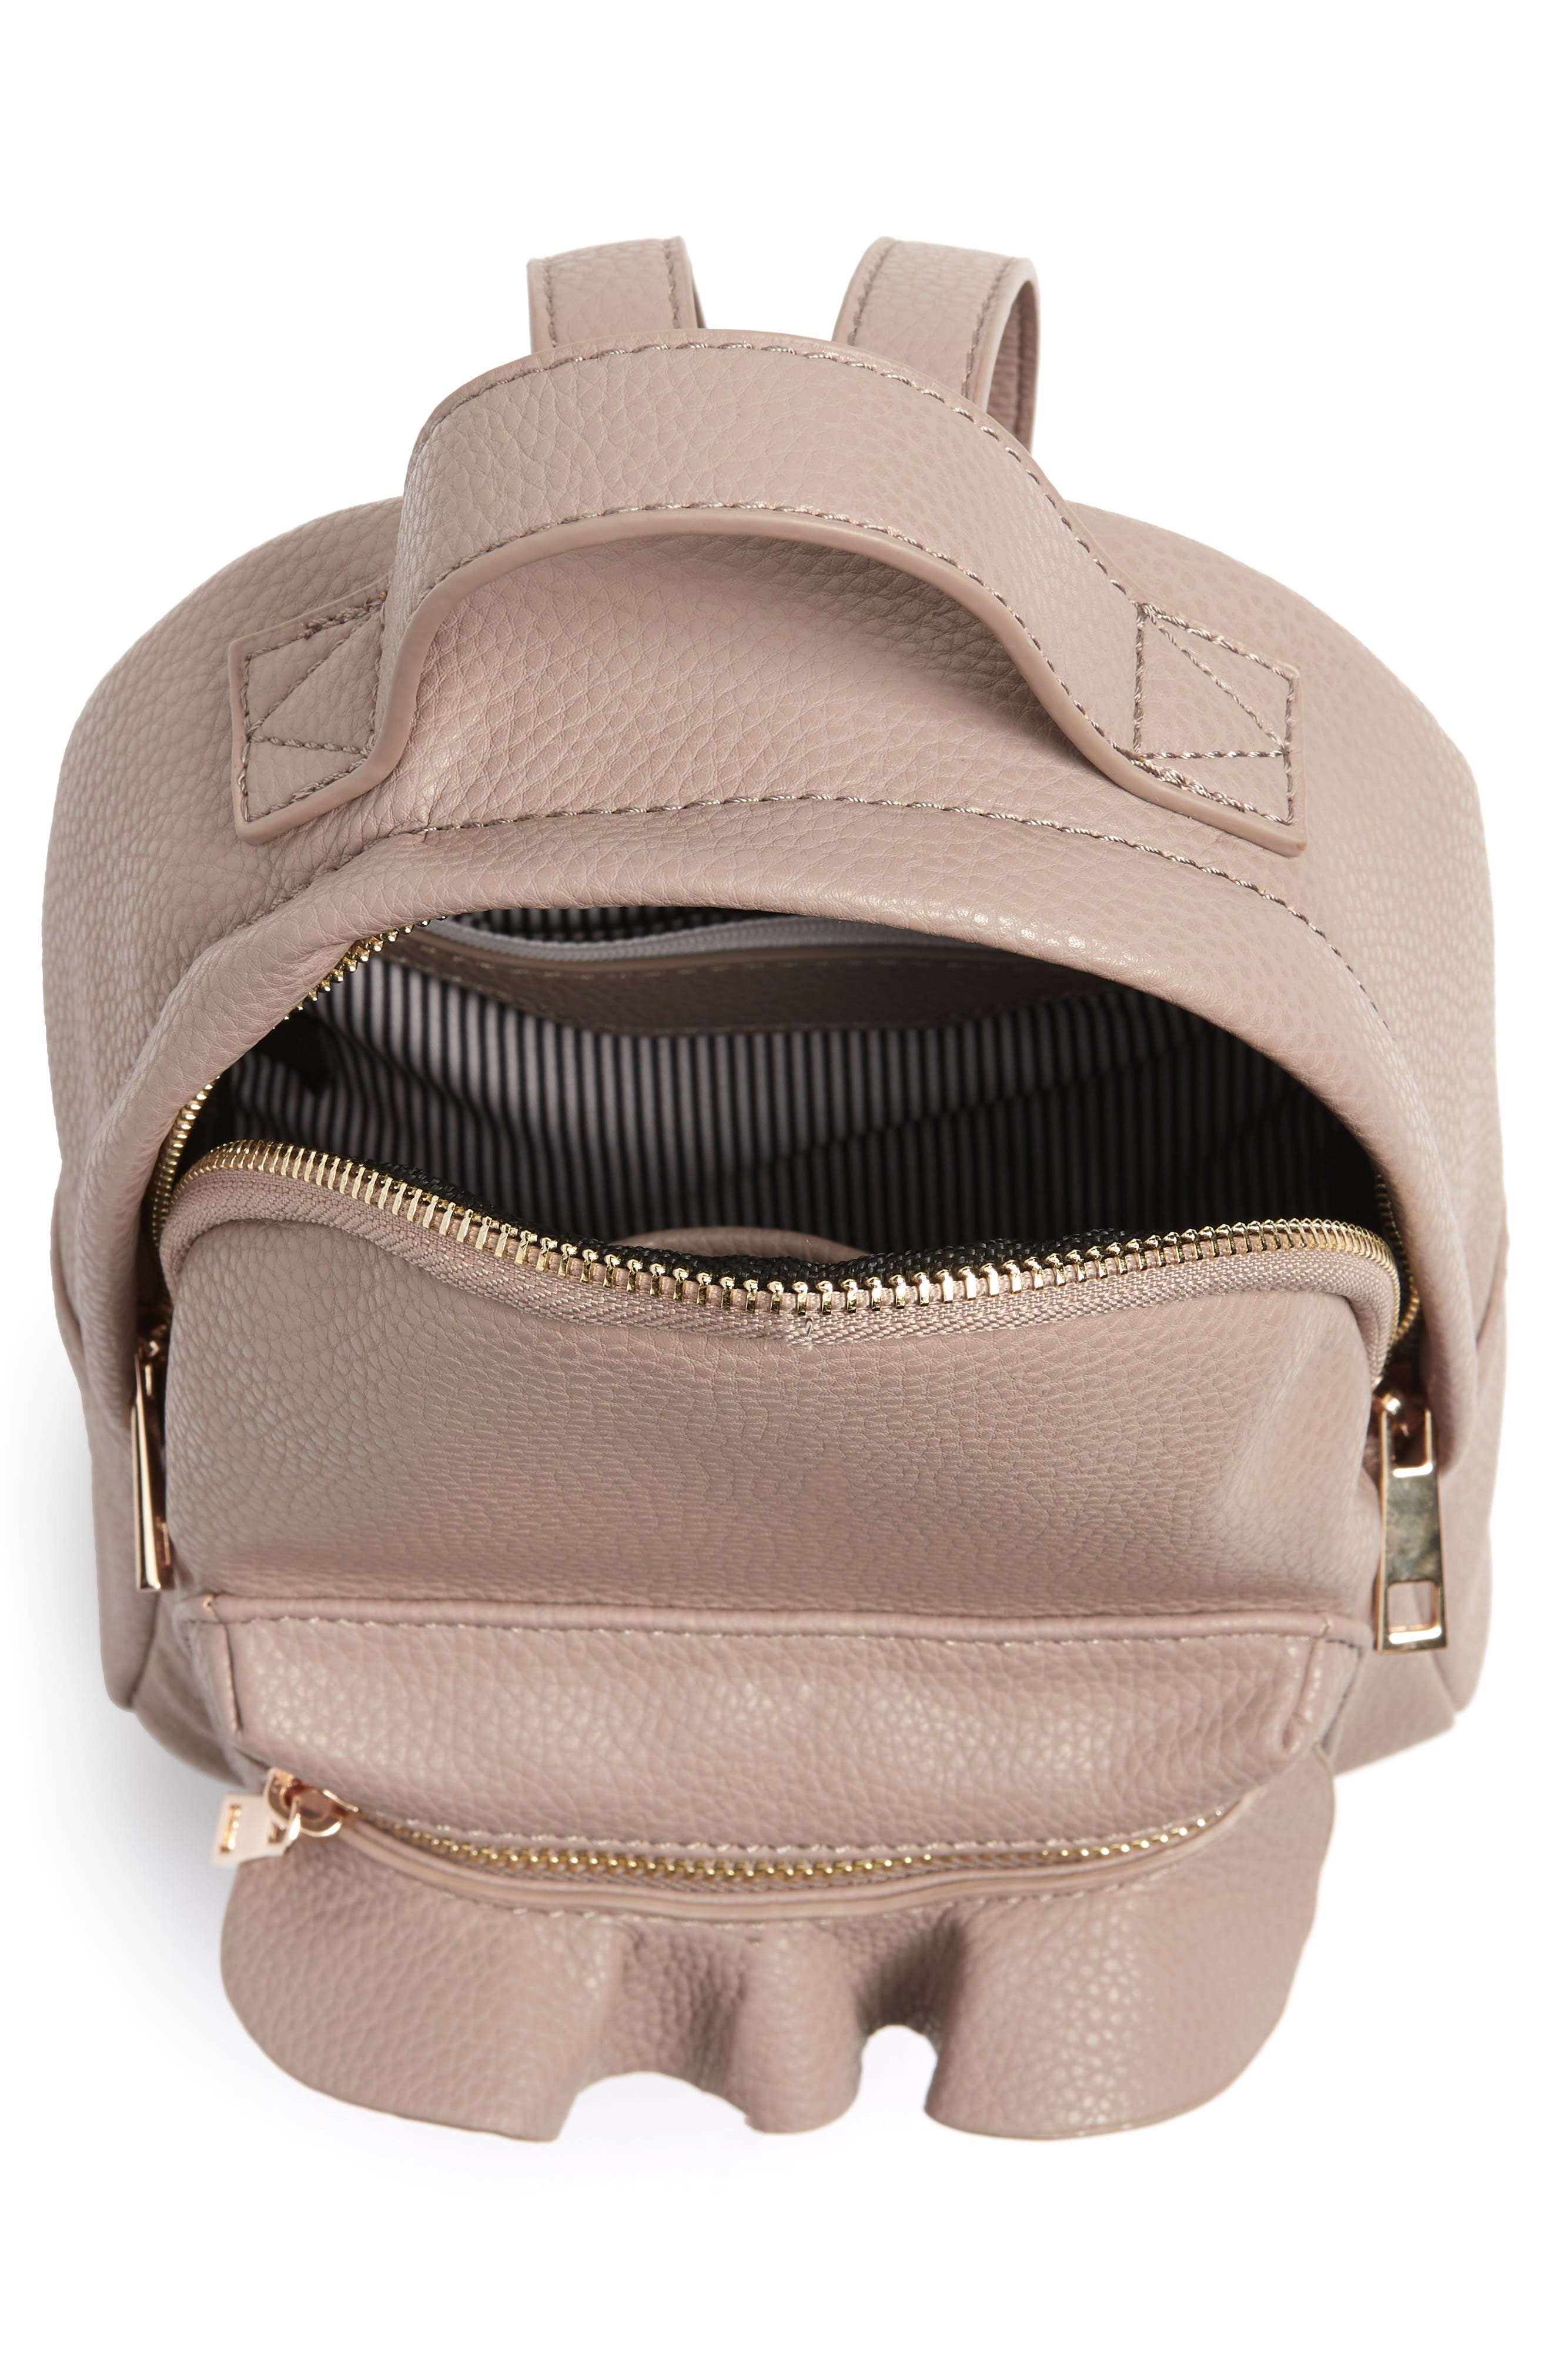 Tracie Mini Faux Leather Backpack,                             Alternate thumbnail 4, color,                             Taupe